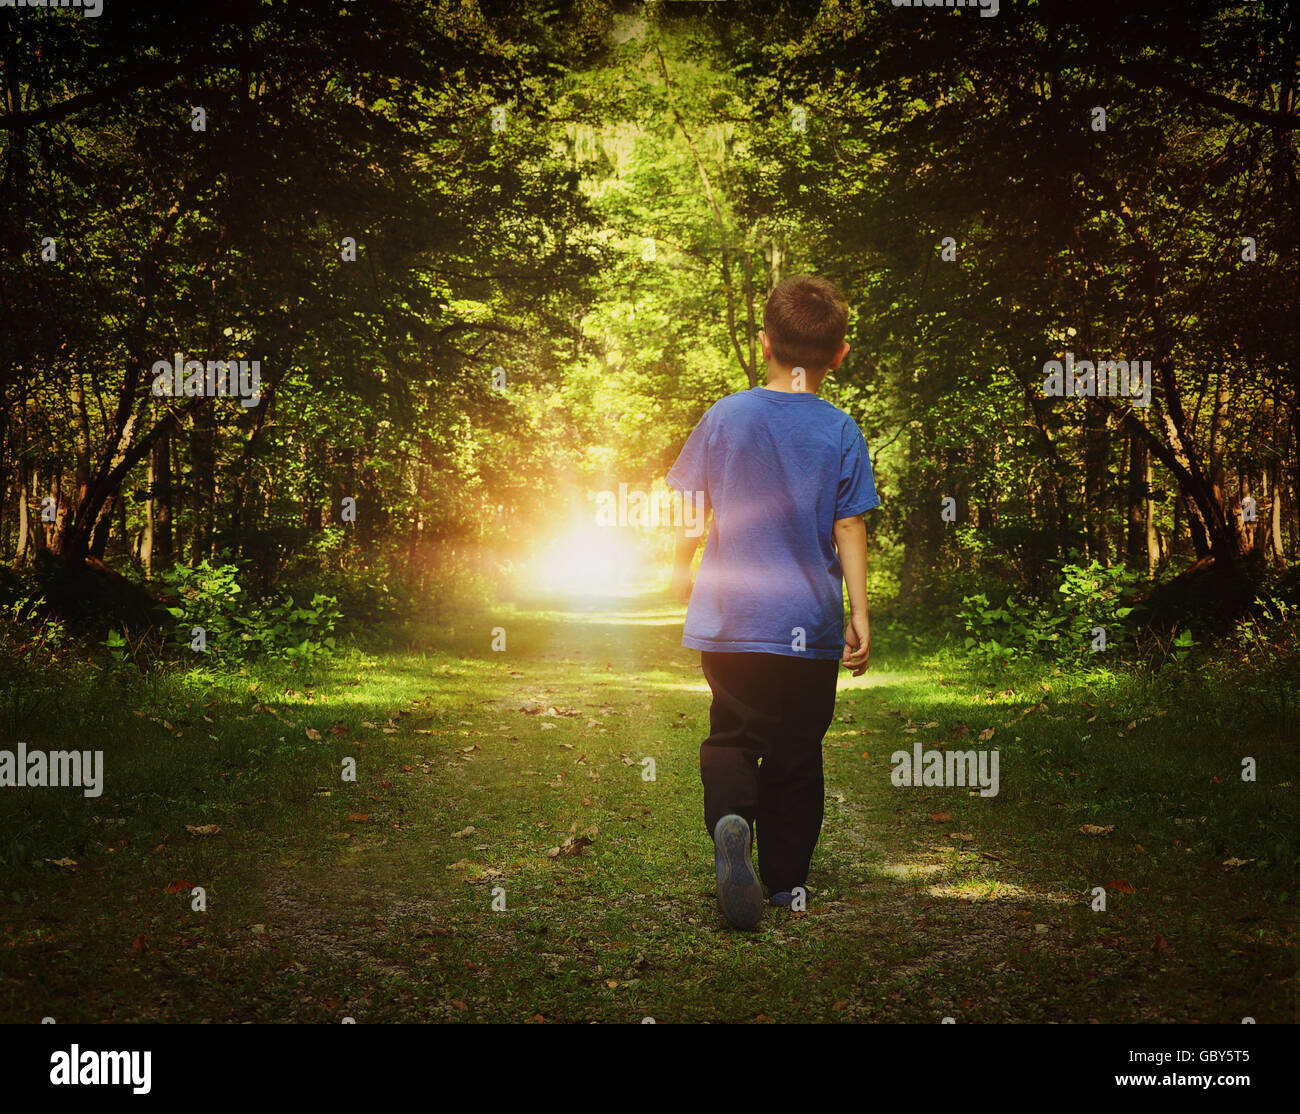 A child is walking in the dark woods into a bright light on a path for a freedom or happiness concept. Stock Photo